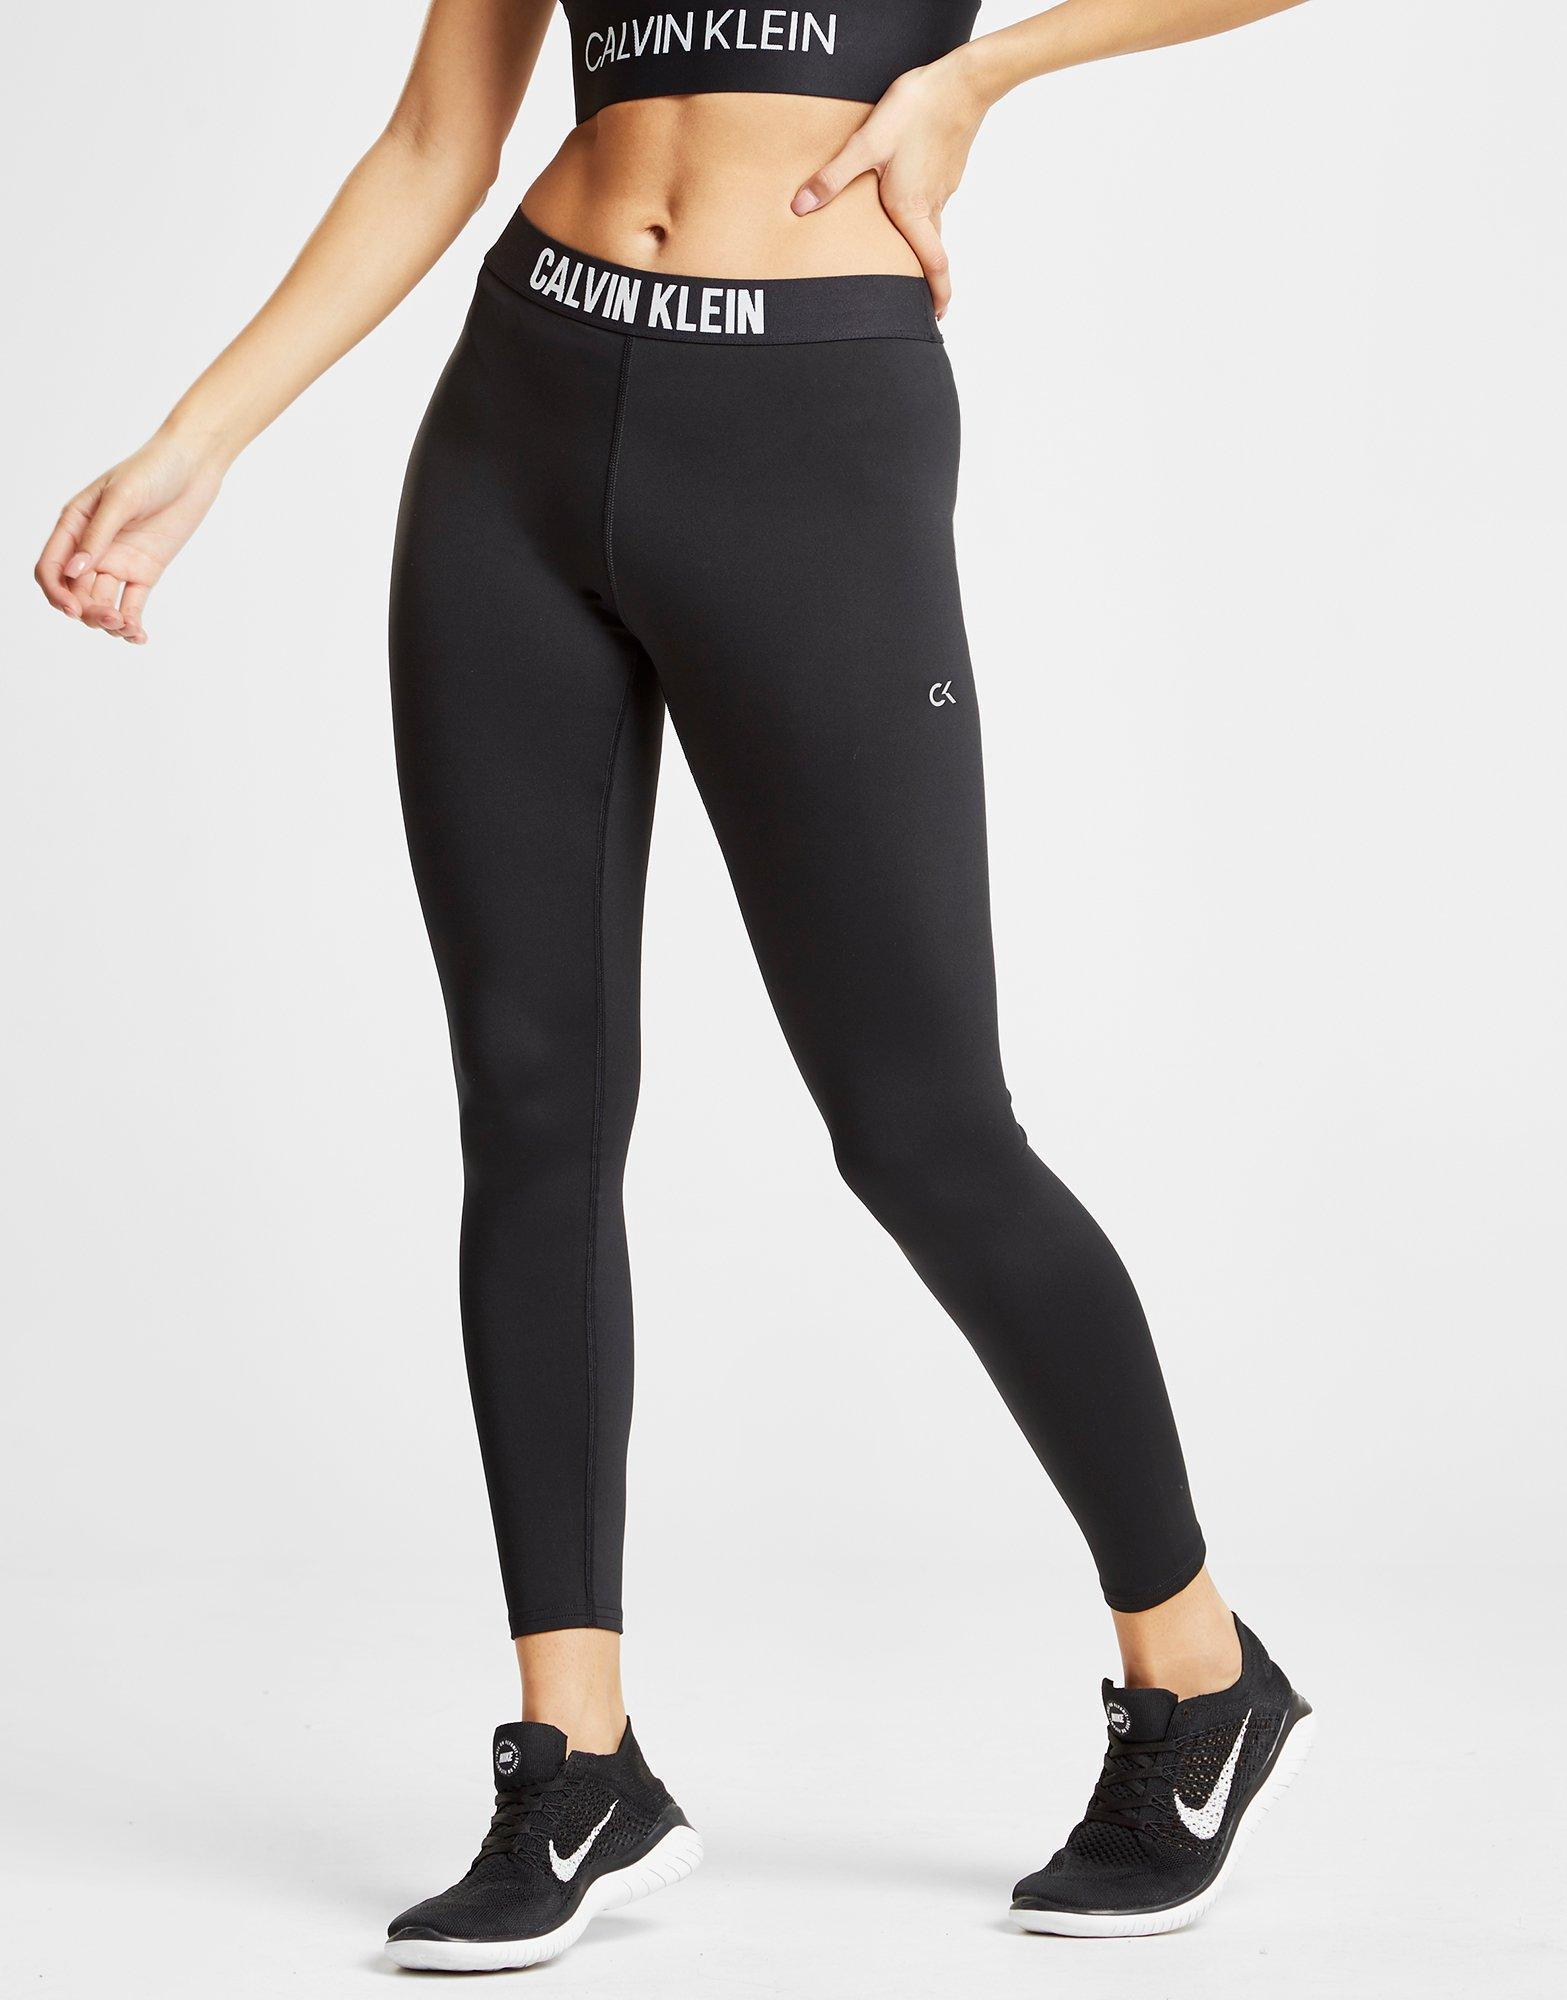 Lyst - Calvin Klein Performance Tape Tights in Black 4098d350afdfa